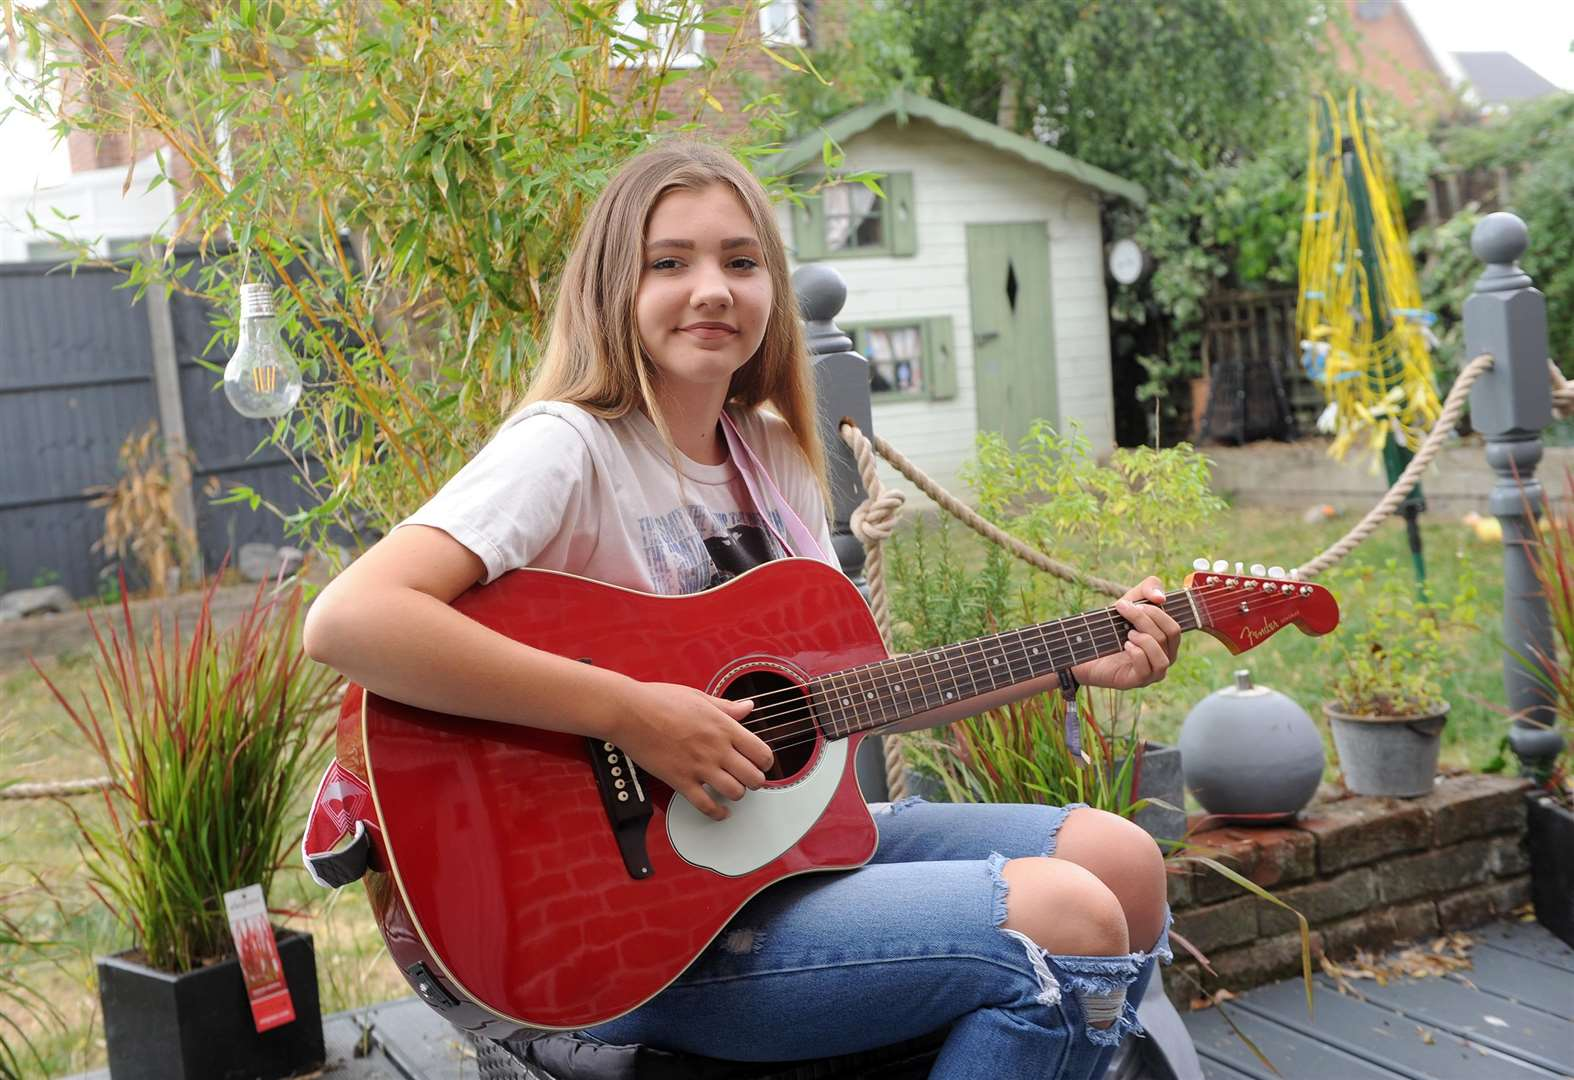 Glemsford teenager gains taste of stardom after performing at Latitude Festival